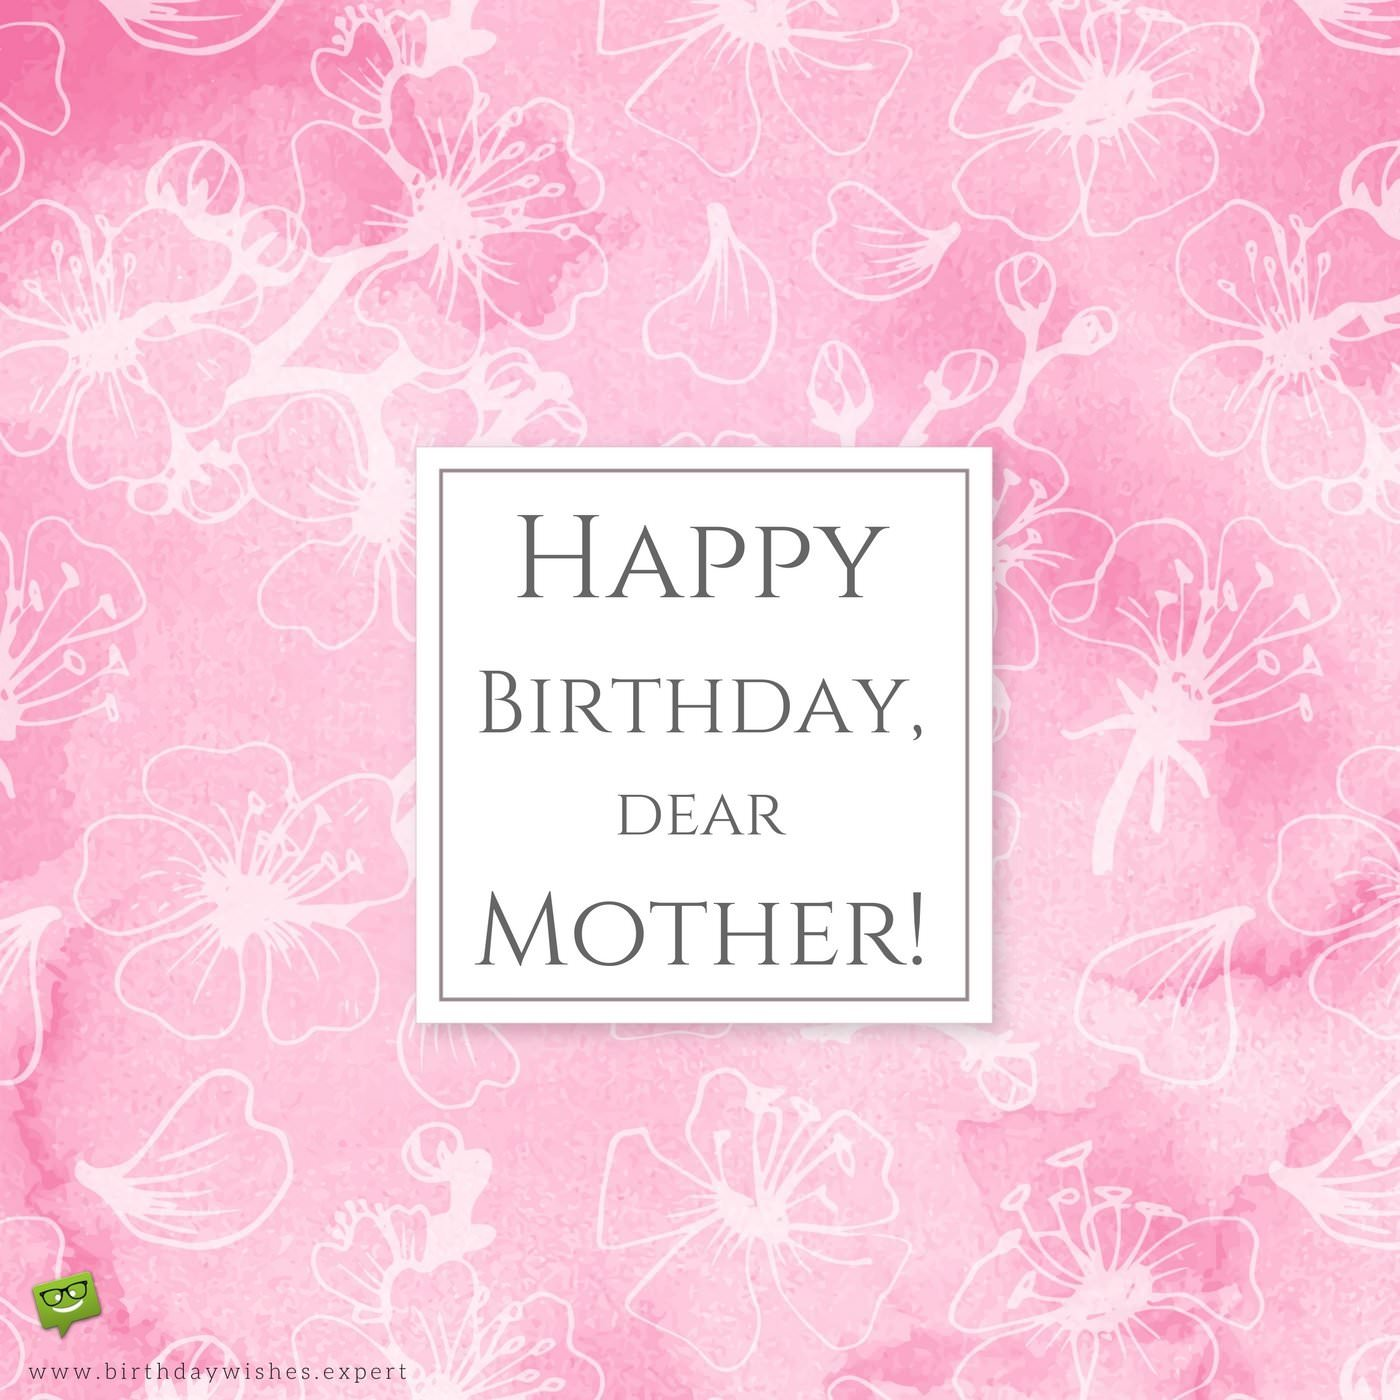 Pretty pink wallpaper birthday greeting wish for lovely Mother